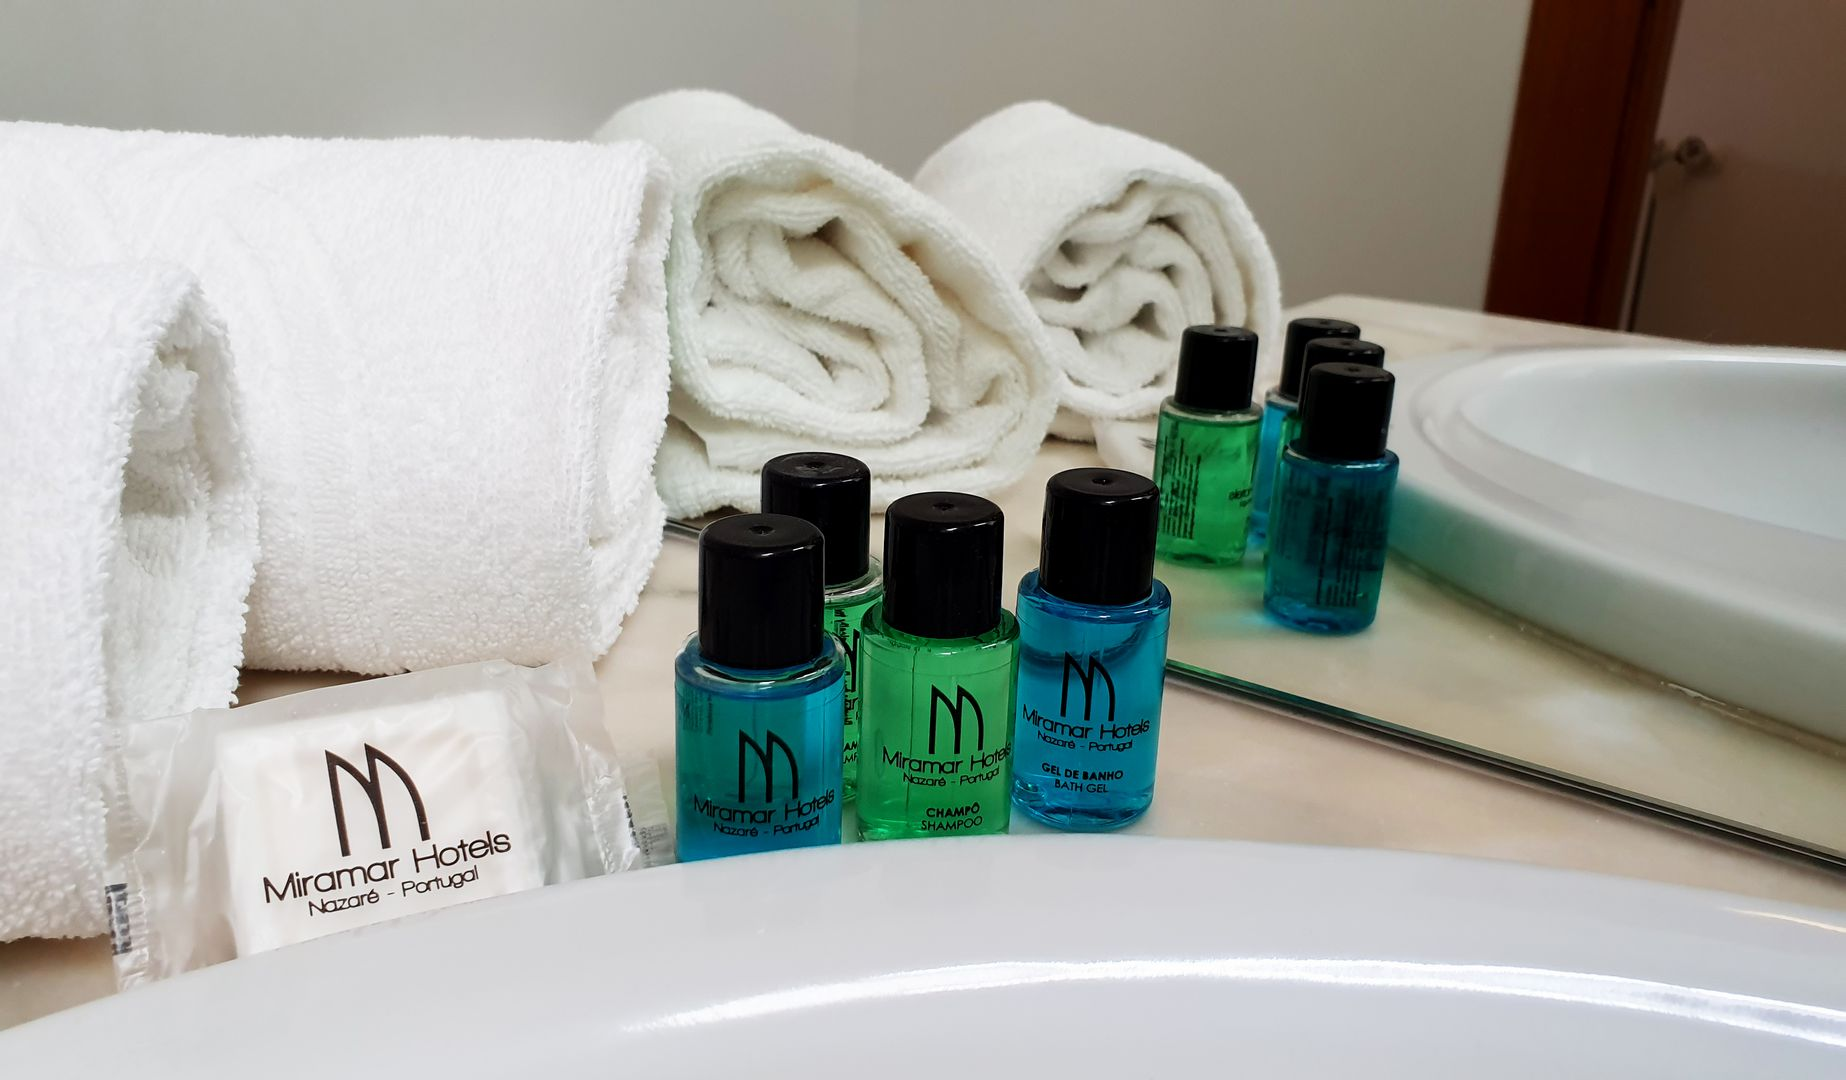 Nazare-Miramar-hotel-spa-amenities